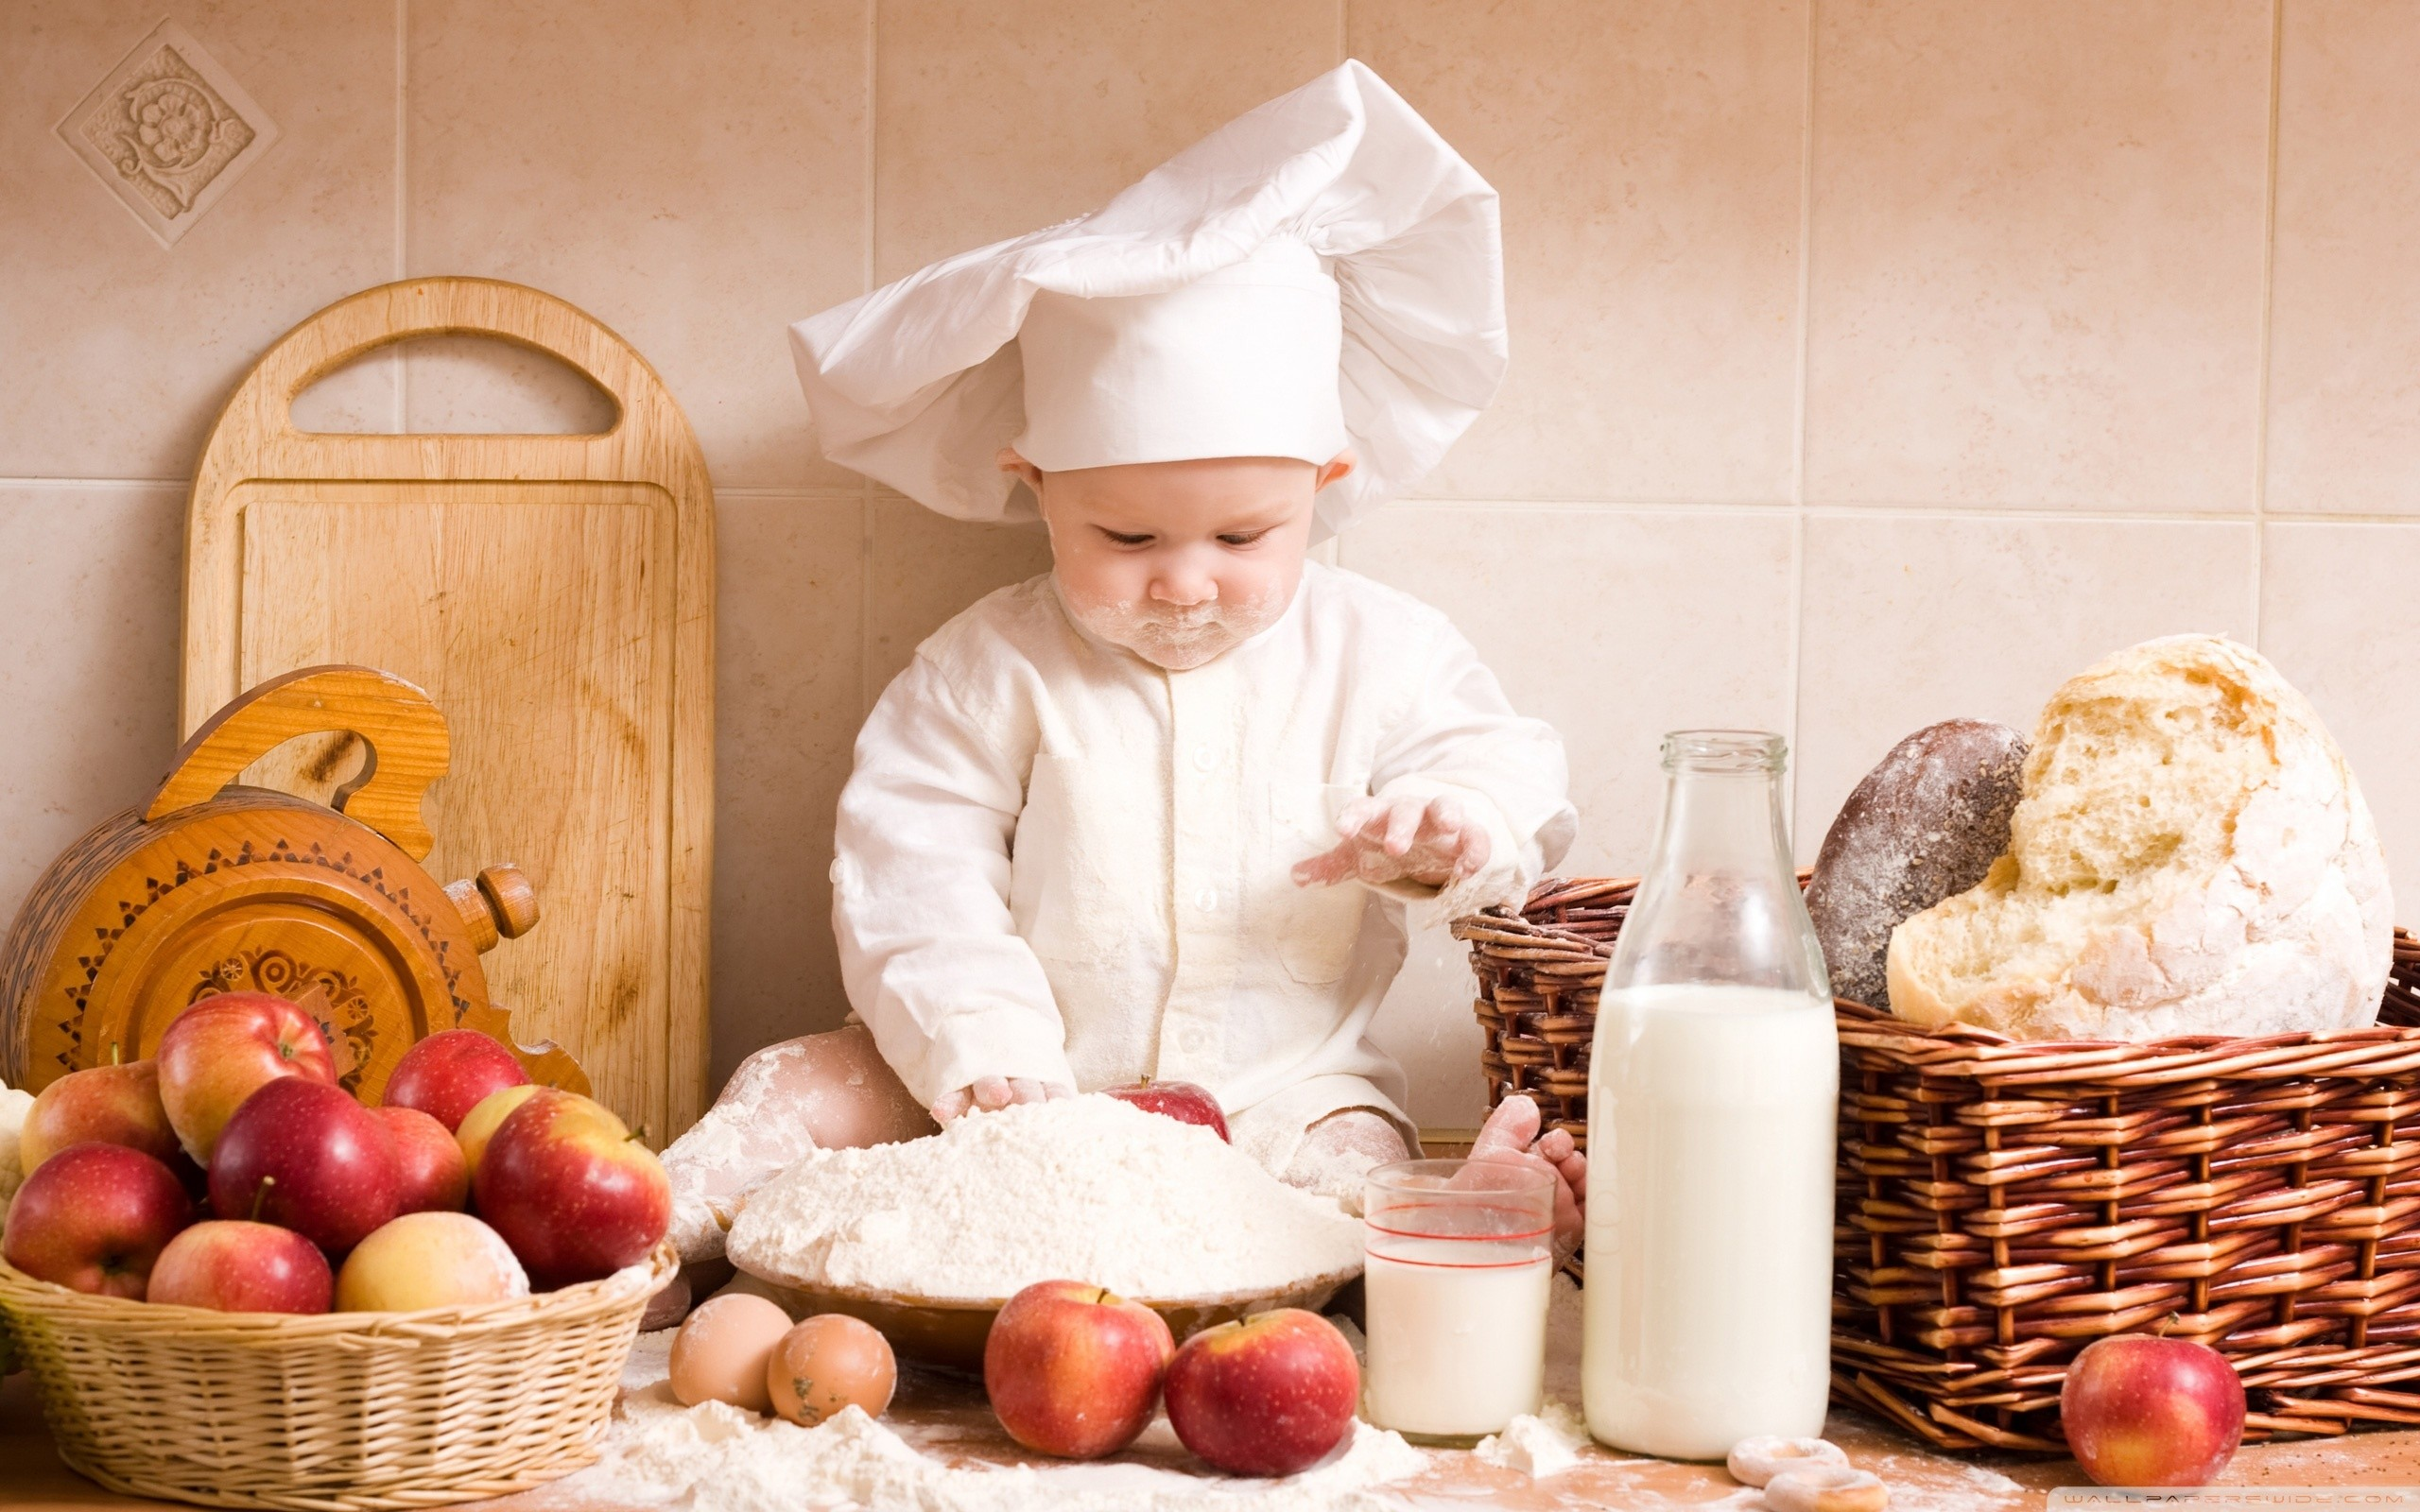 Baby Chef PNG - 149343